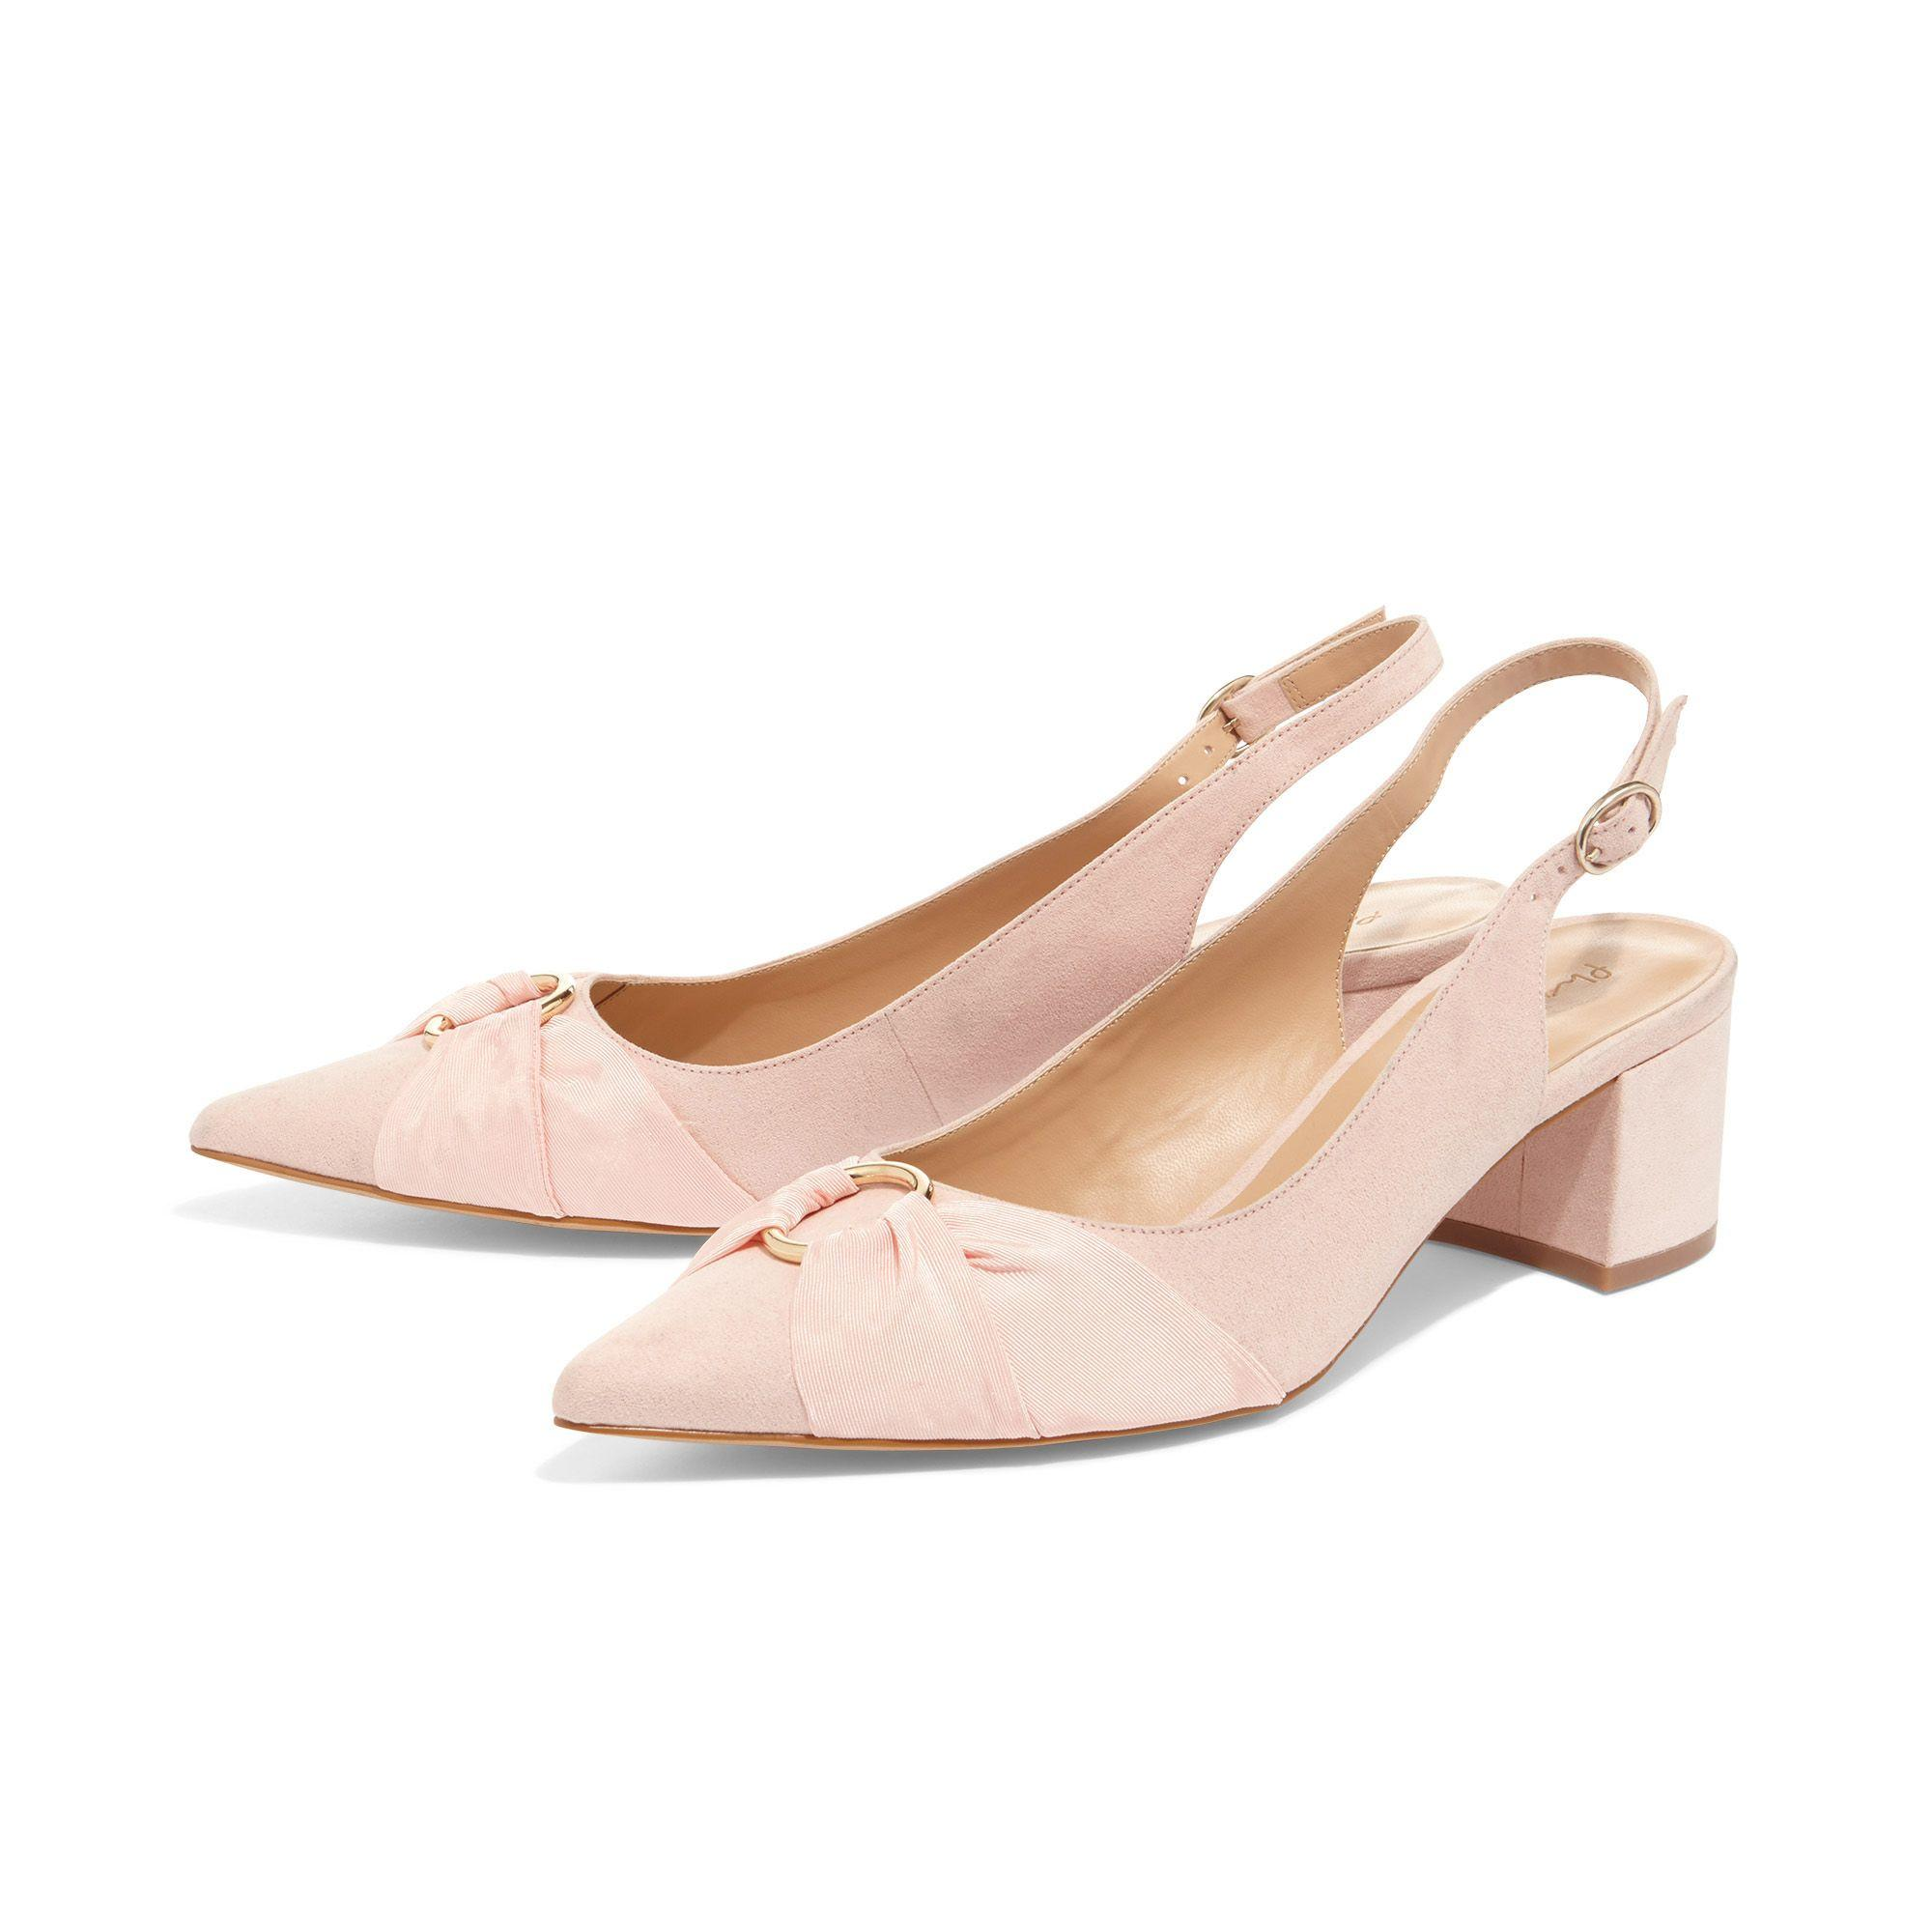 f89eb6e9234 Phase Eight Pink Giselle Block Heel Court Shoes in Pink - Lyst